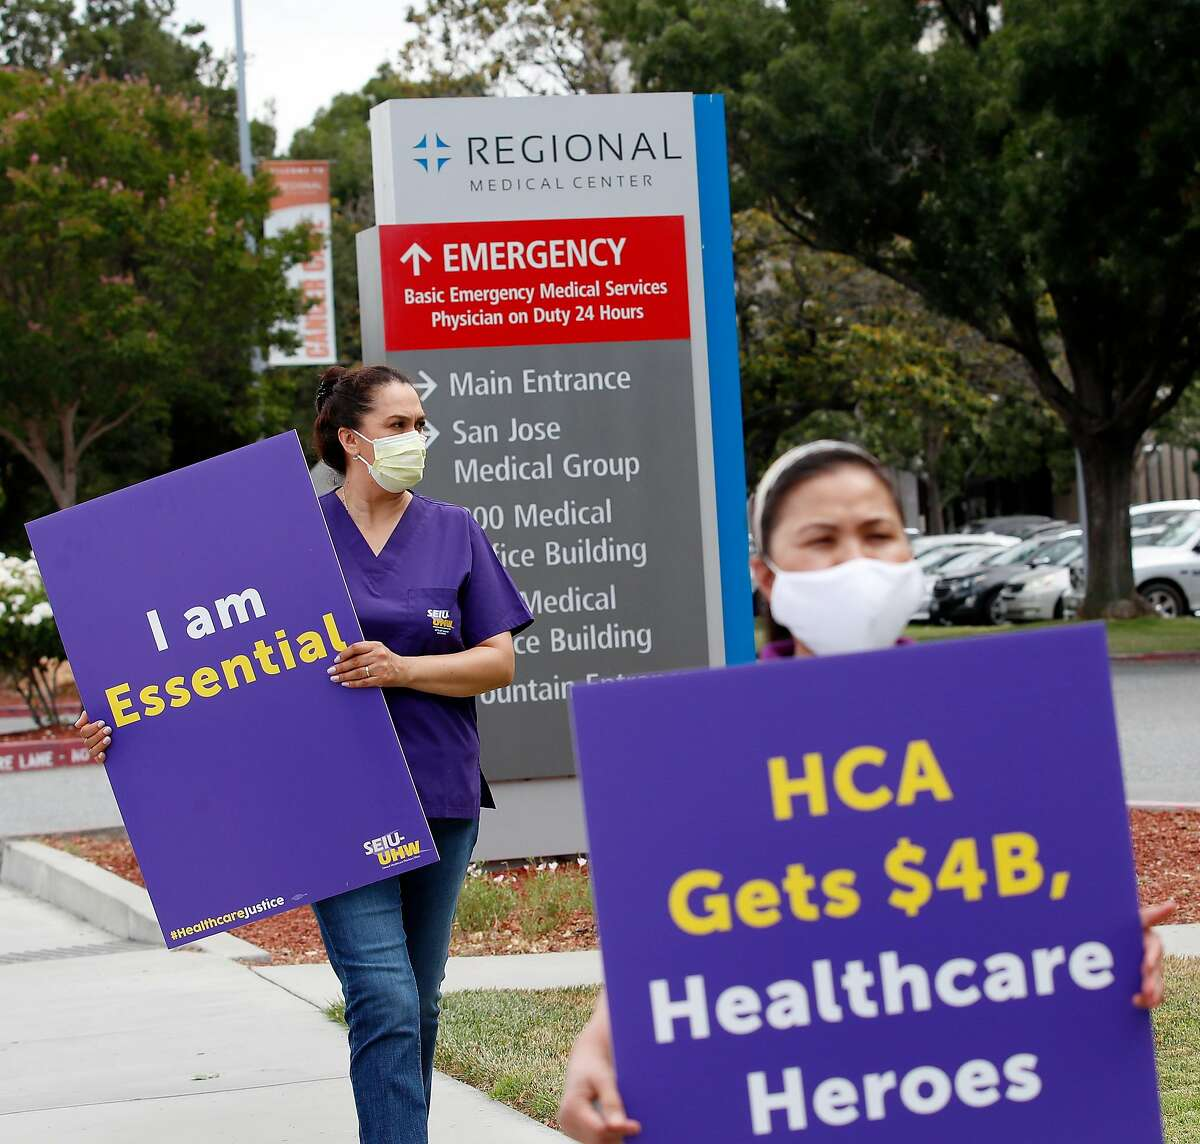 (Left-right) Healthcare workers, Maria Casorla and Cecilia Gidley, participate in rally to protest the hospitals' cut to caregivers' retirement benefits as workers continue to risk their lives to care for patients during the COVID-19 pandemic. At Regional Medical Center, in San Jose, California on Tuesday, July 21, 2020. Staffing shortages haven't reached crisis levels just yet. But if current trends continue, the conditions for shortfalls loom large.